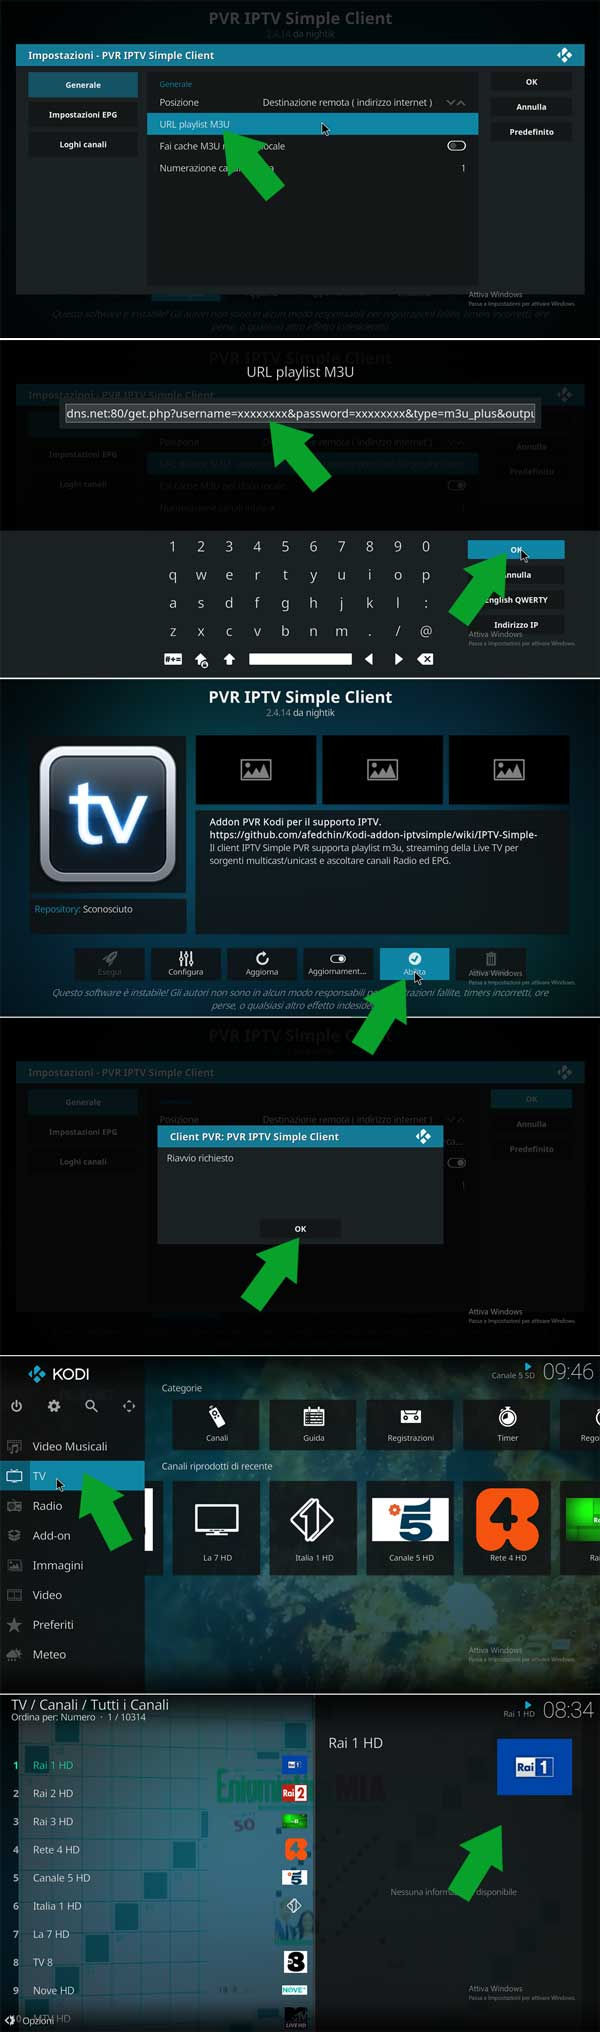 Guida IPTV - Smart TV, box, app, programmi, liste | Tu digitale